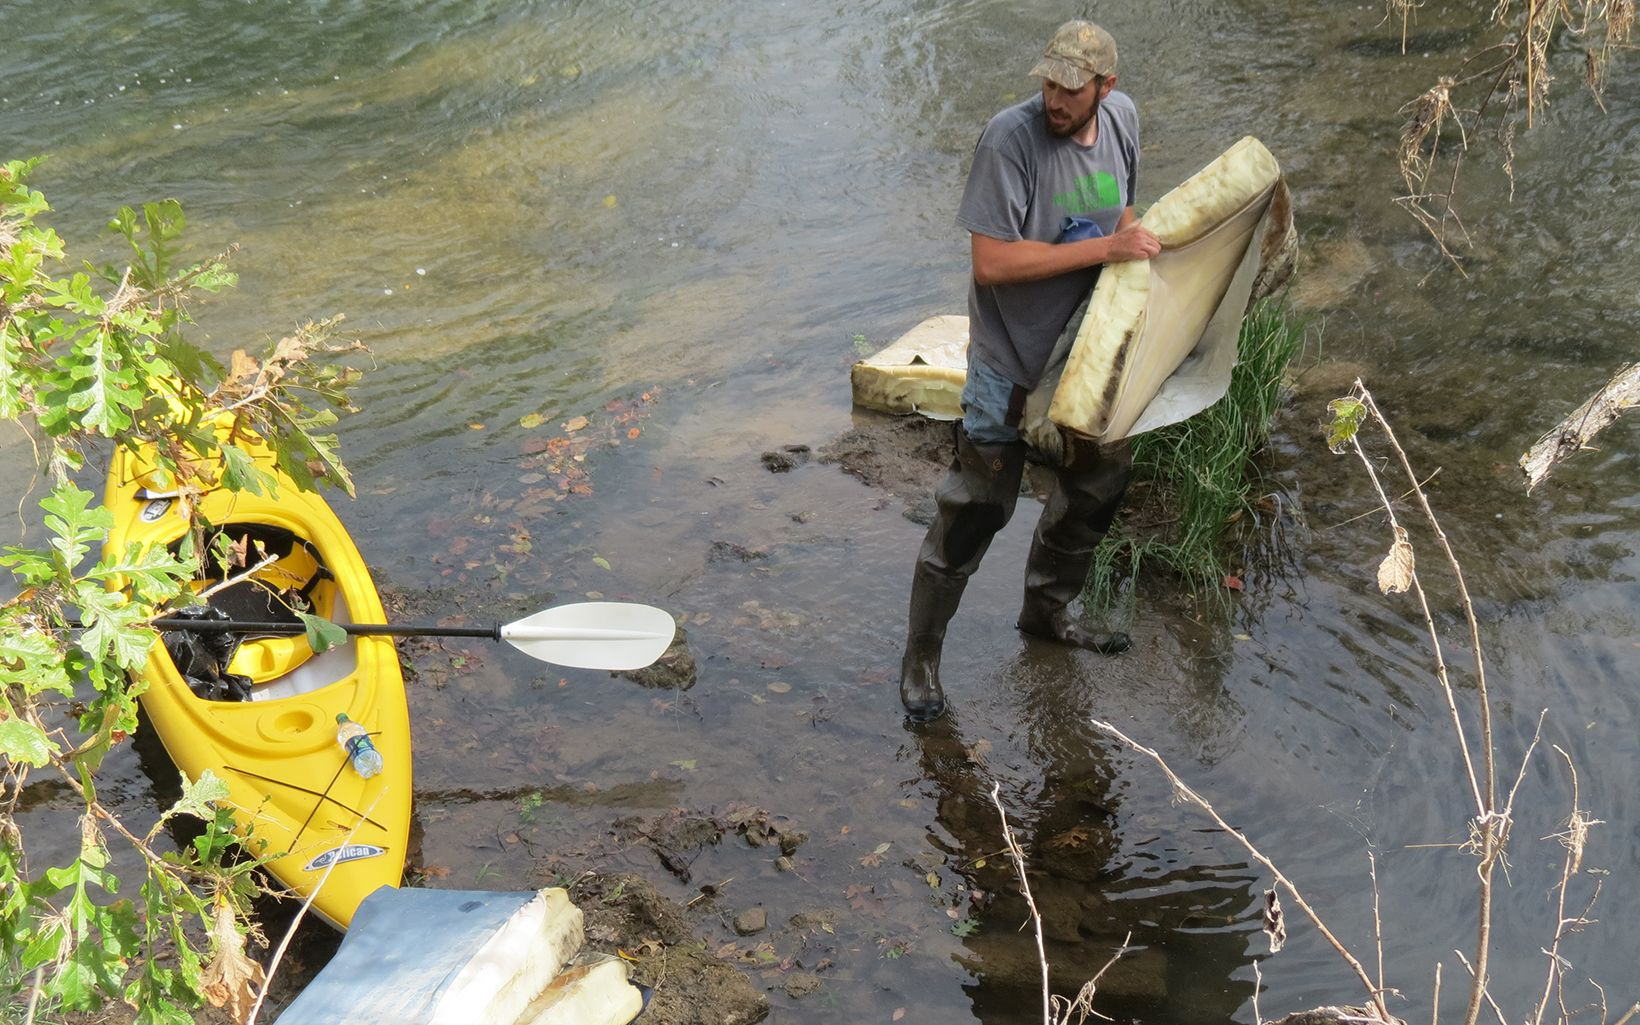 Volunteer cleaning up along Blue River